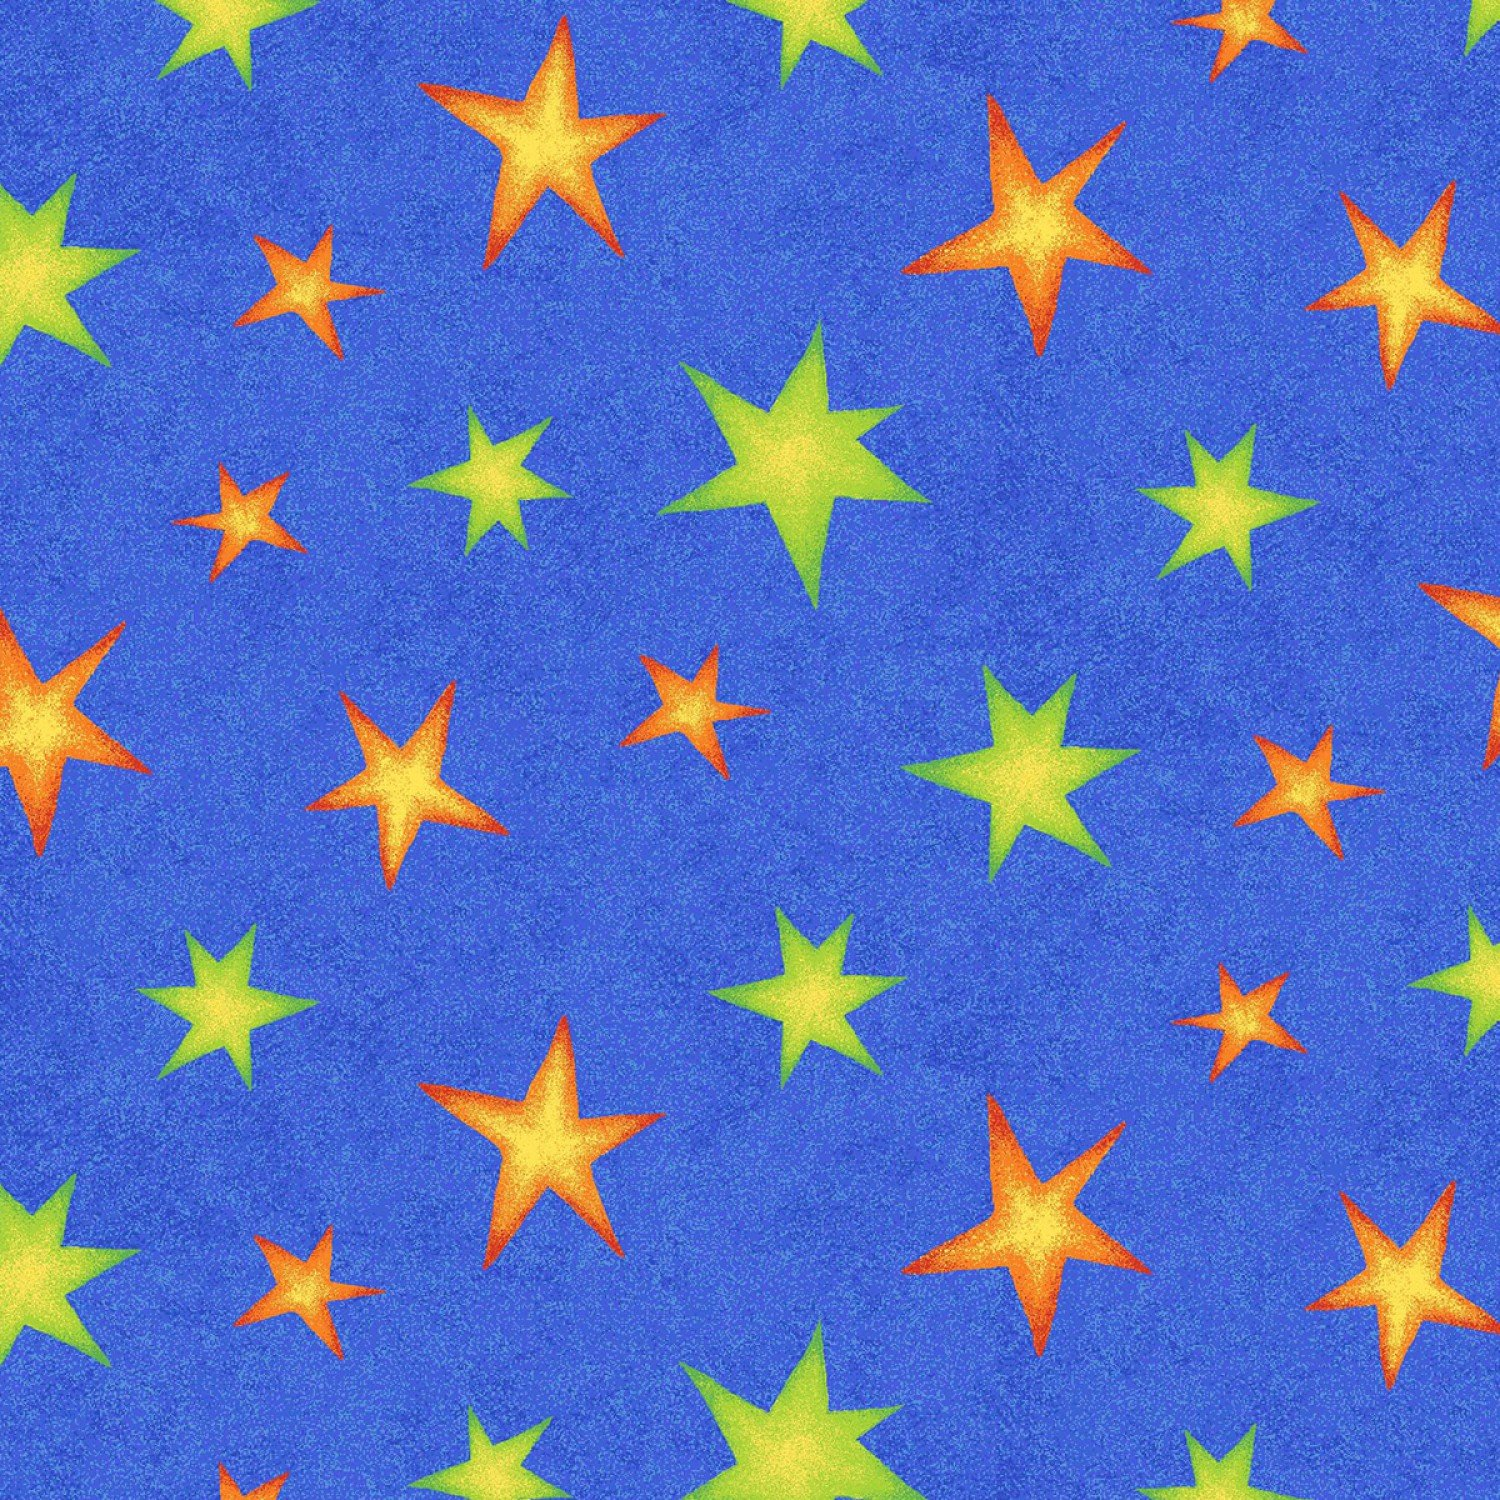 Spacey Blue Stars